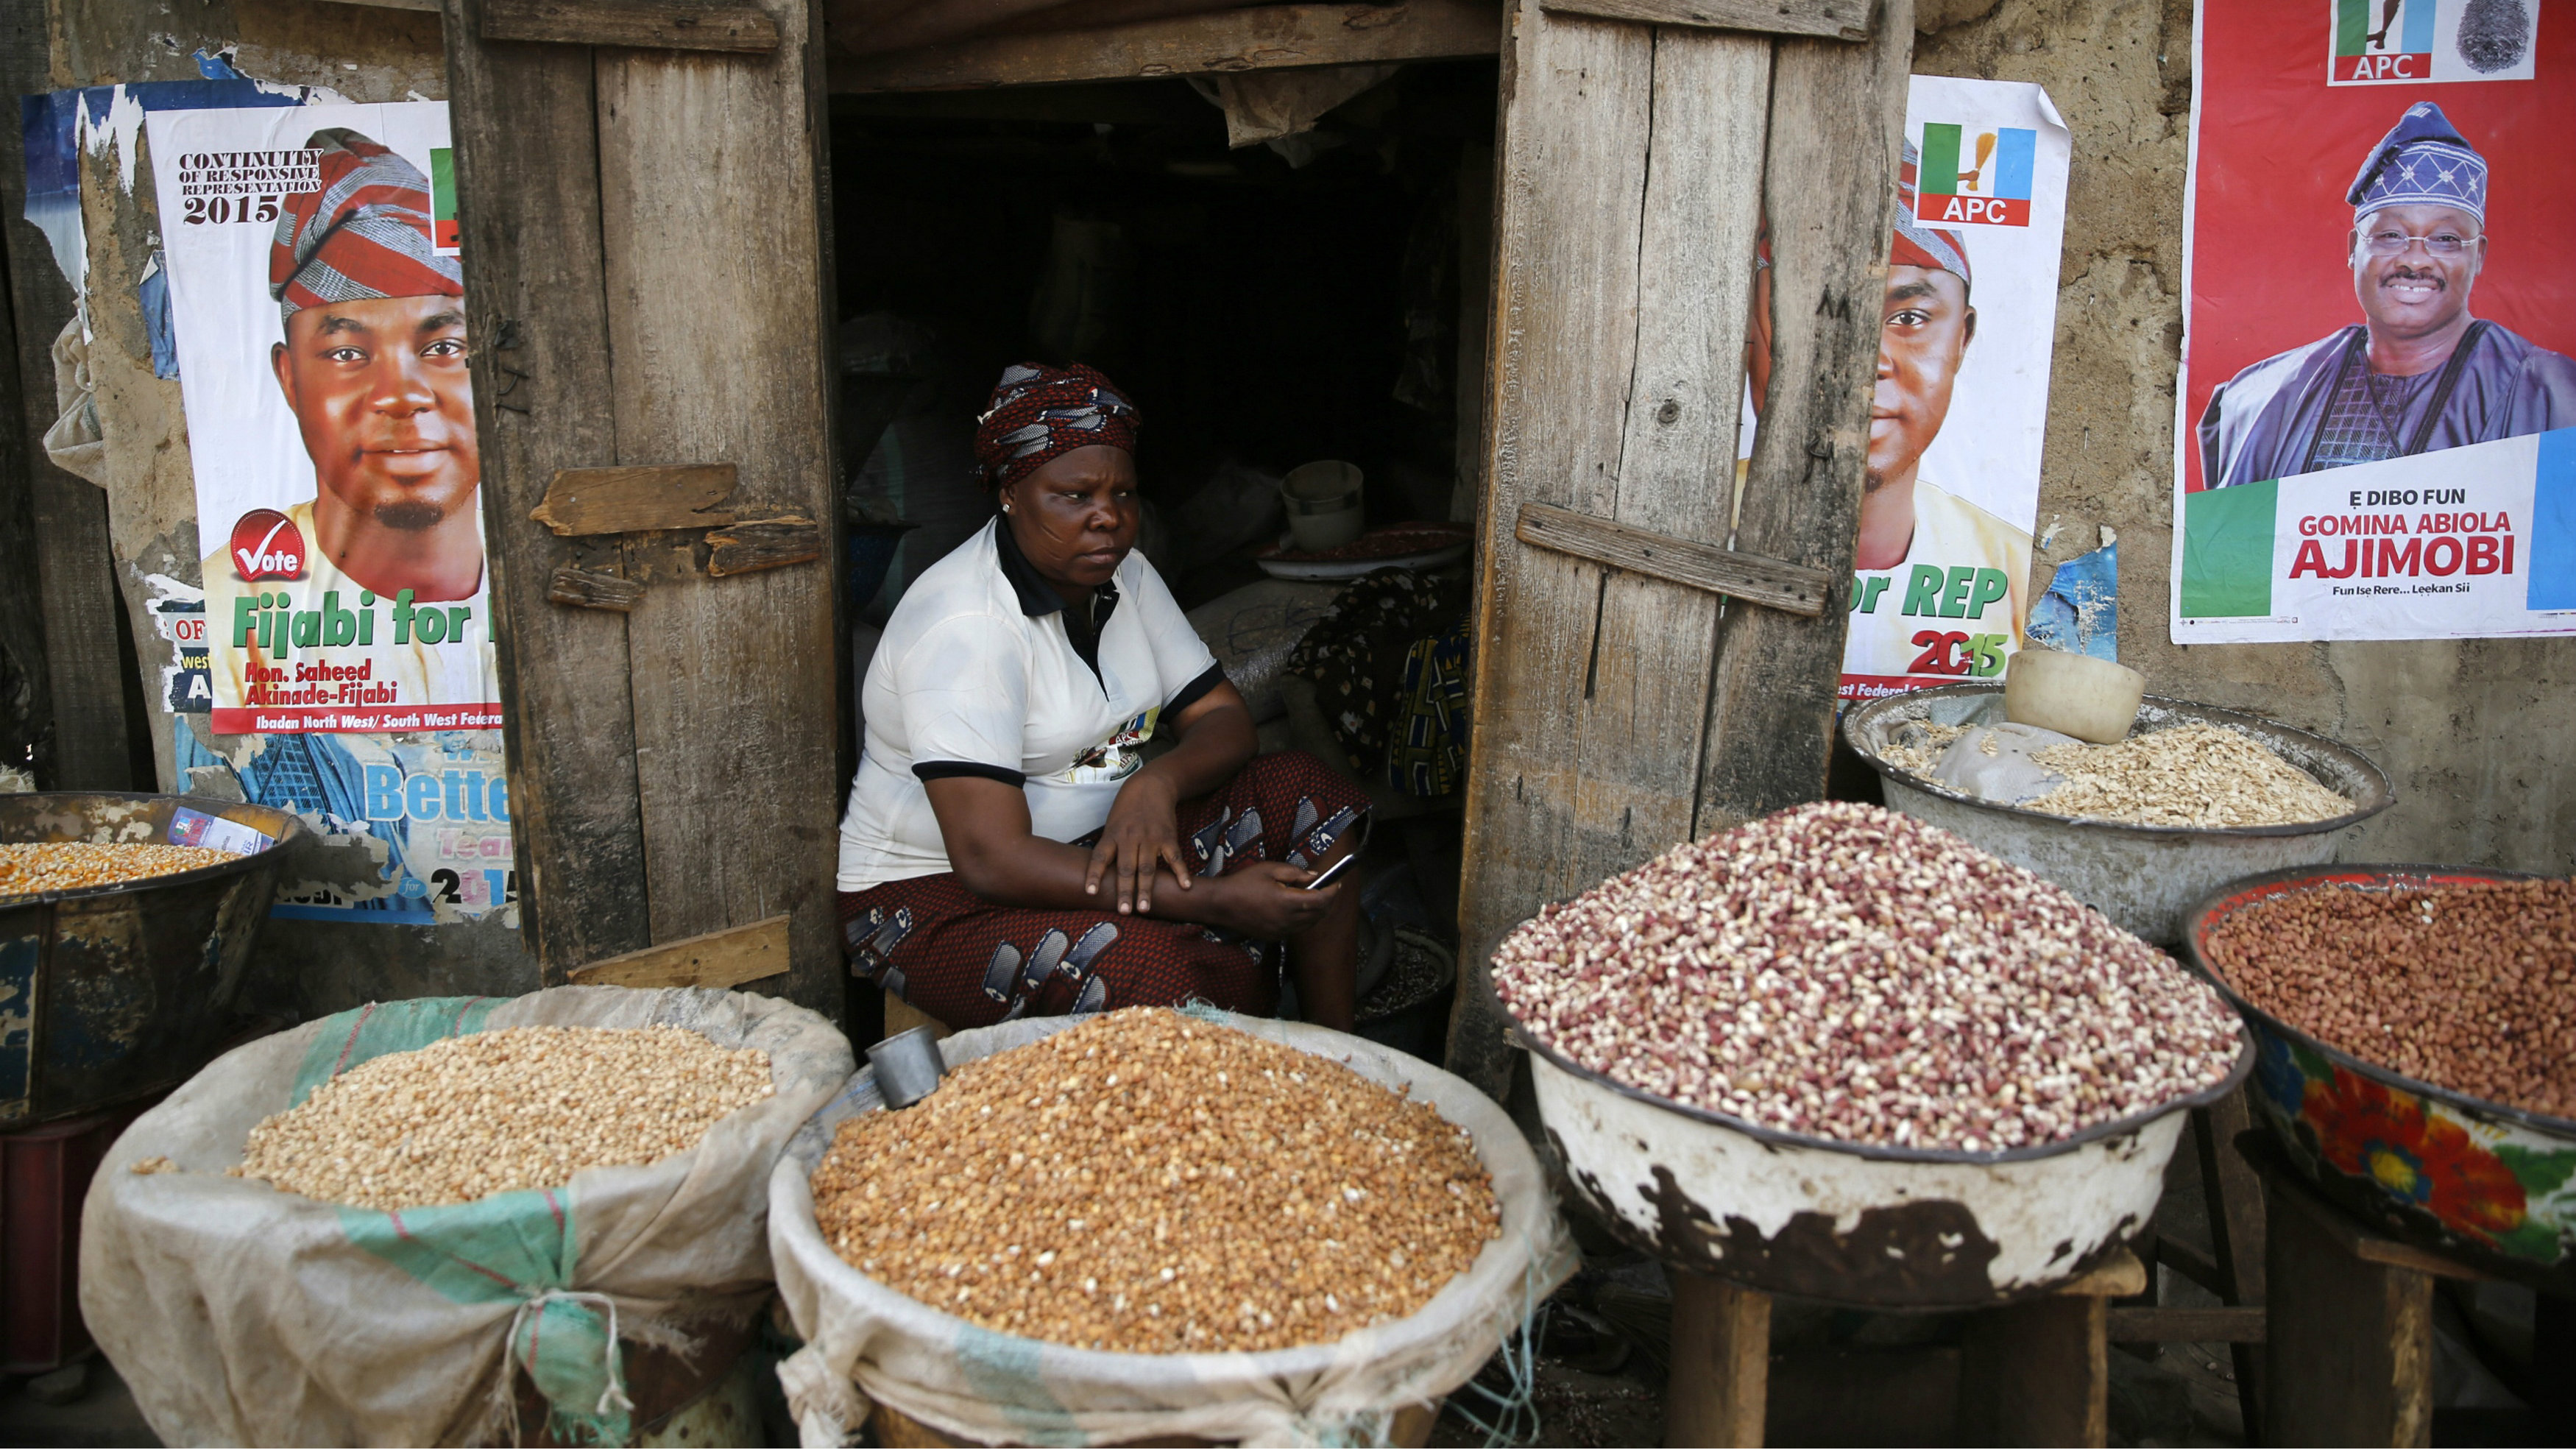 Latefat Alao, 56, a ethnic Yoruba Muslim woman, waits for customers in front of her in Beere market in Ibadan, southwest Nigeria, January 29, 2015.